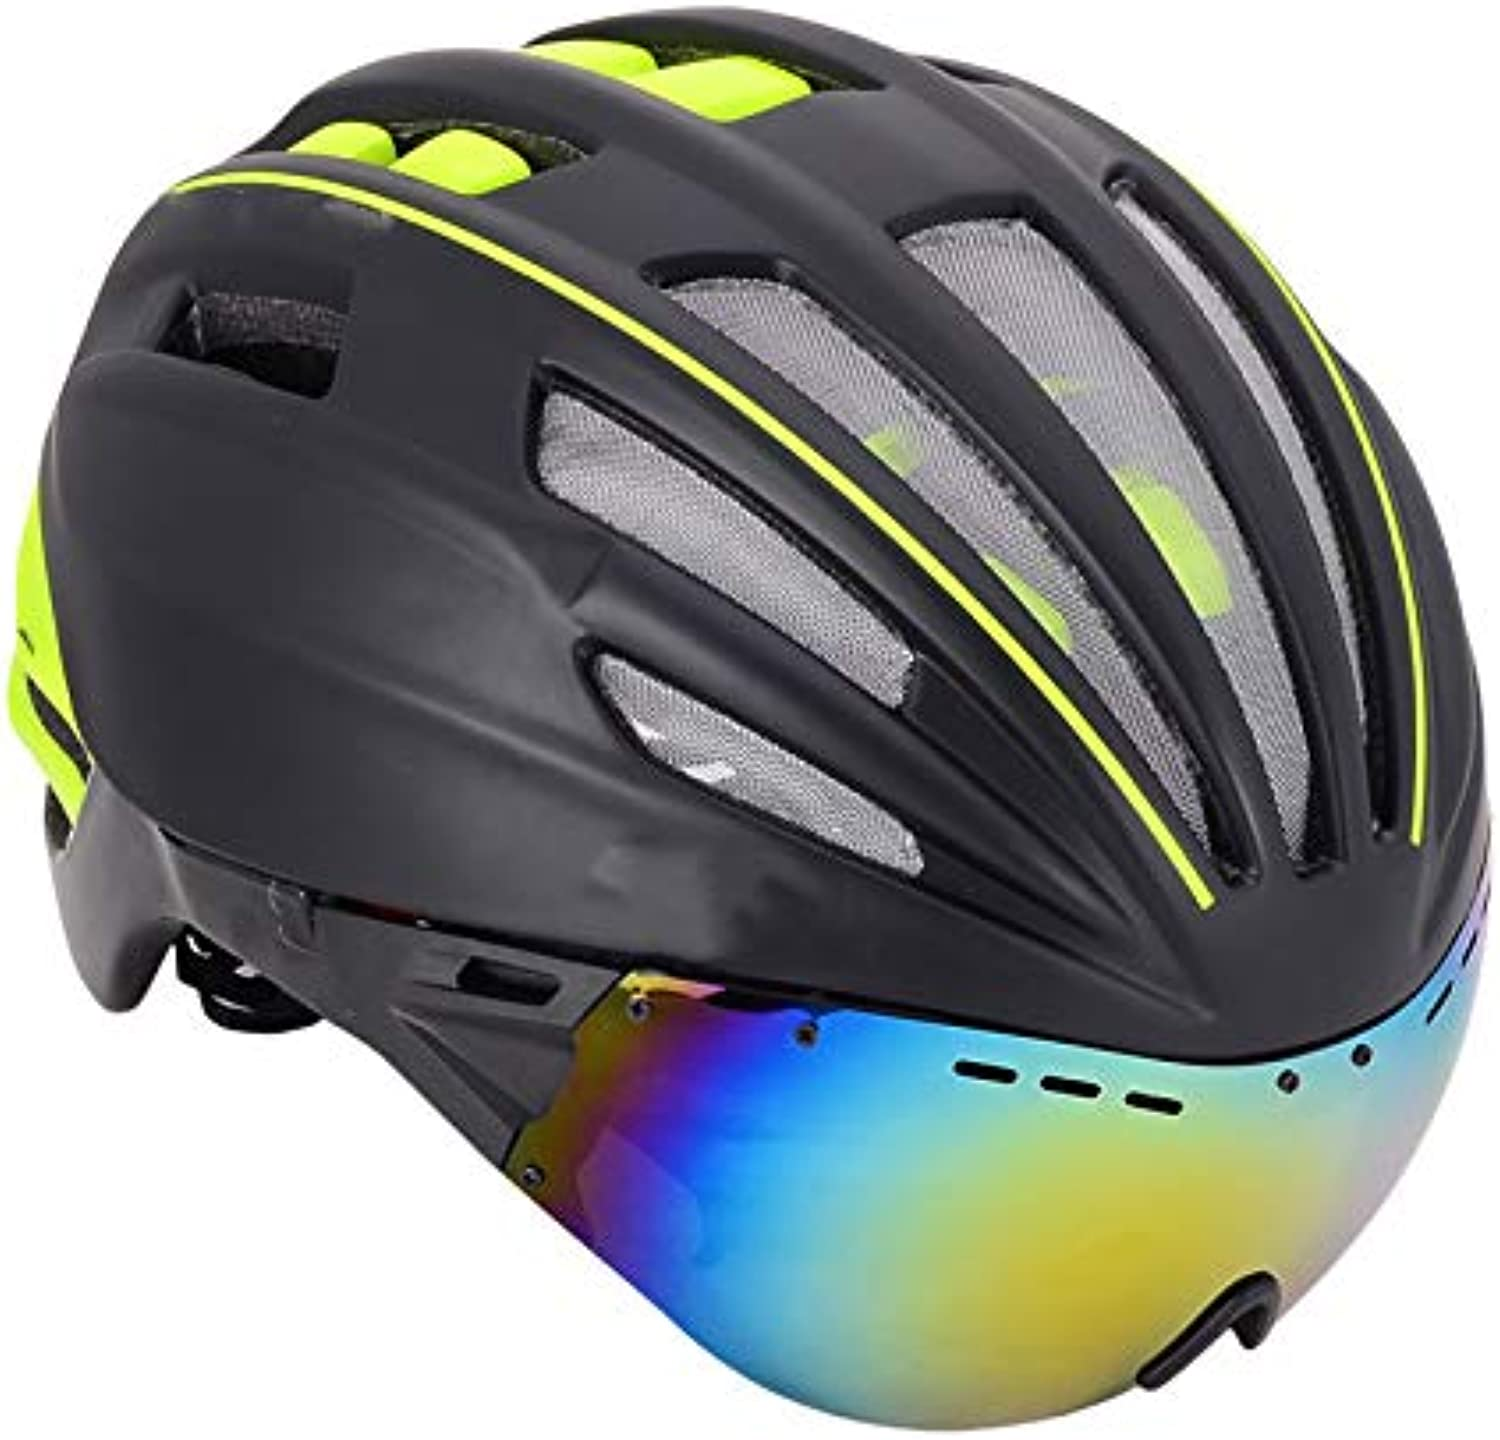 Helmet Goggles Integrated with A Men's Helmet Women's Bicycle Equipment Helmet